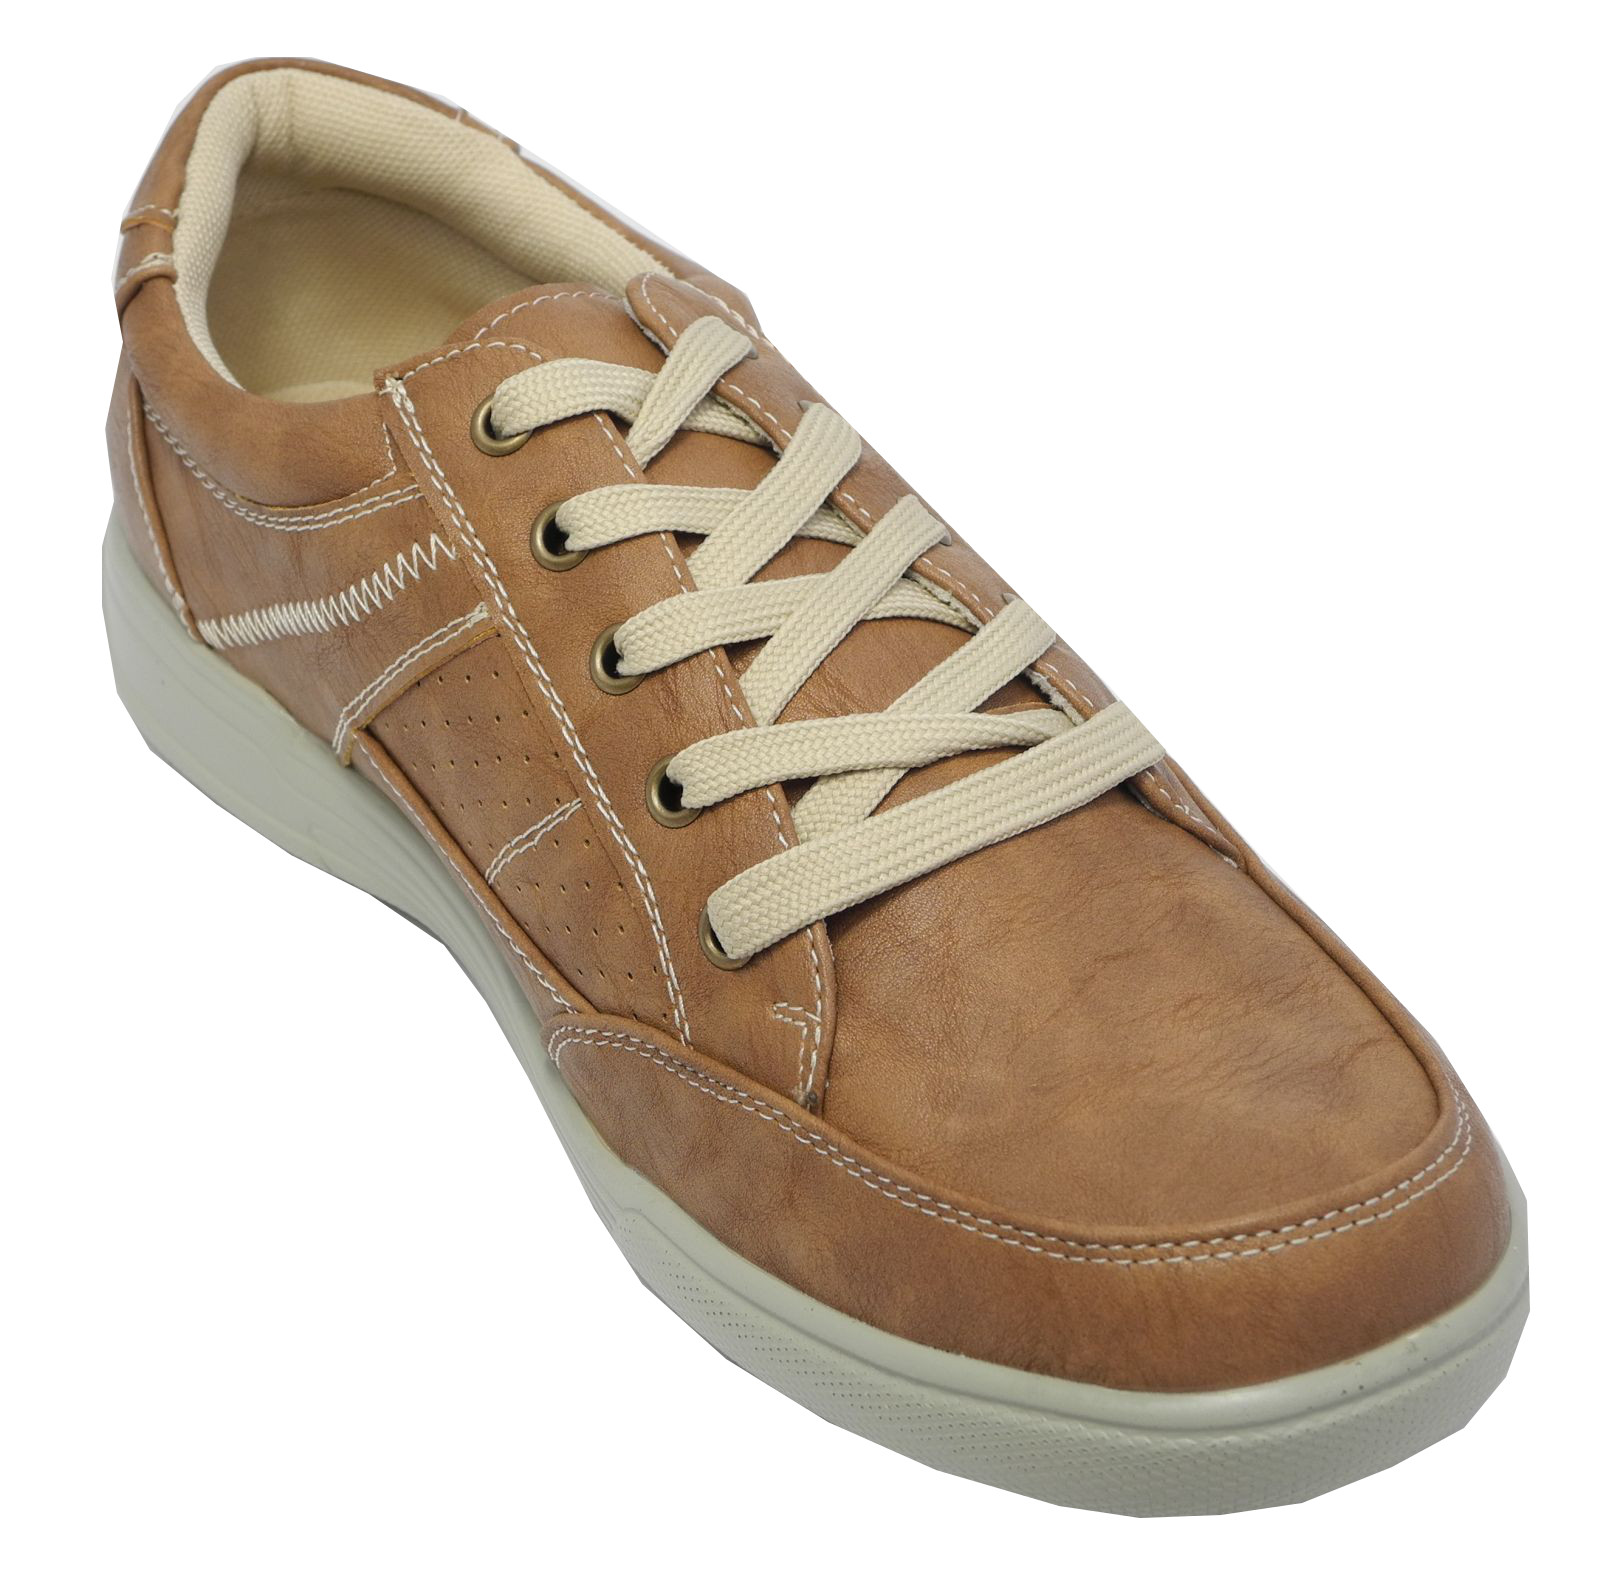 Mens Lightweight Deck Shoes